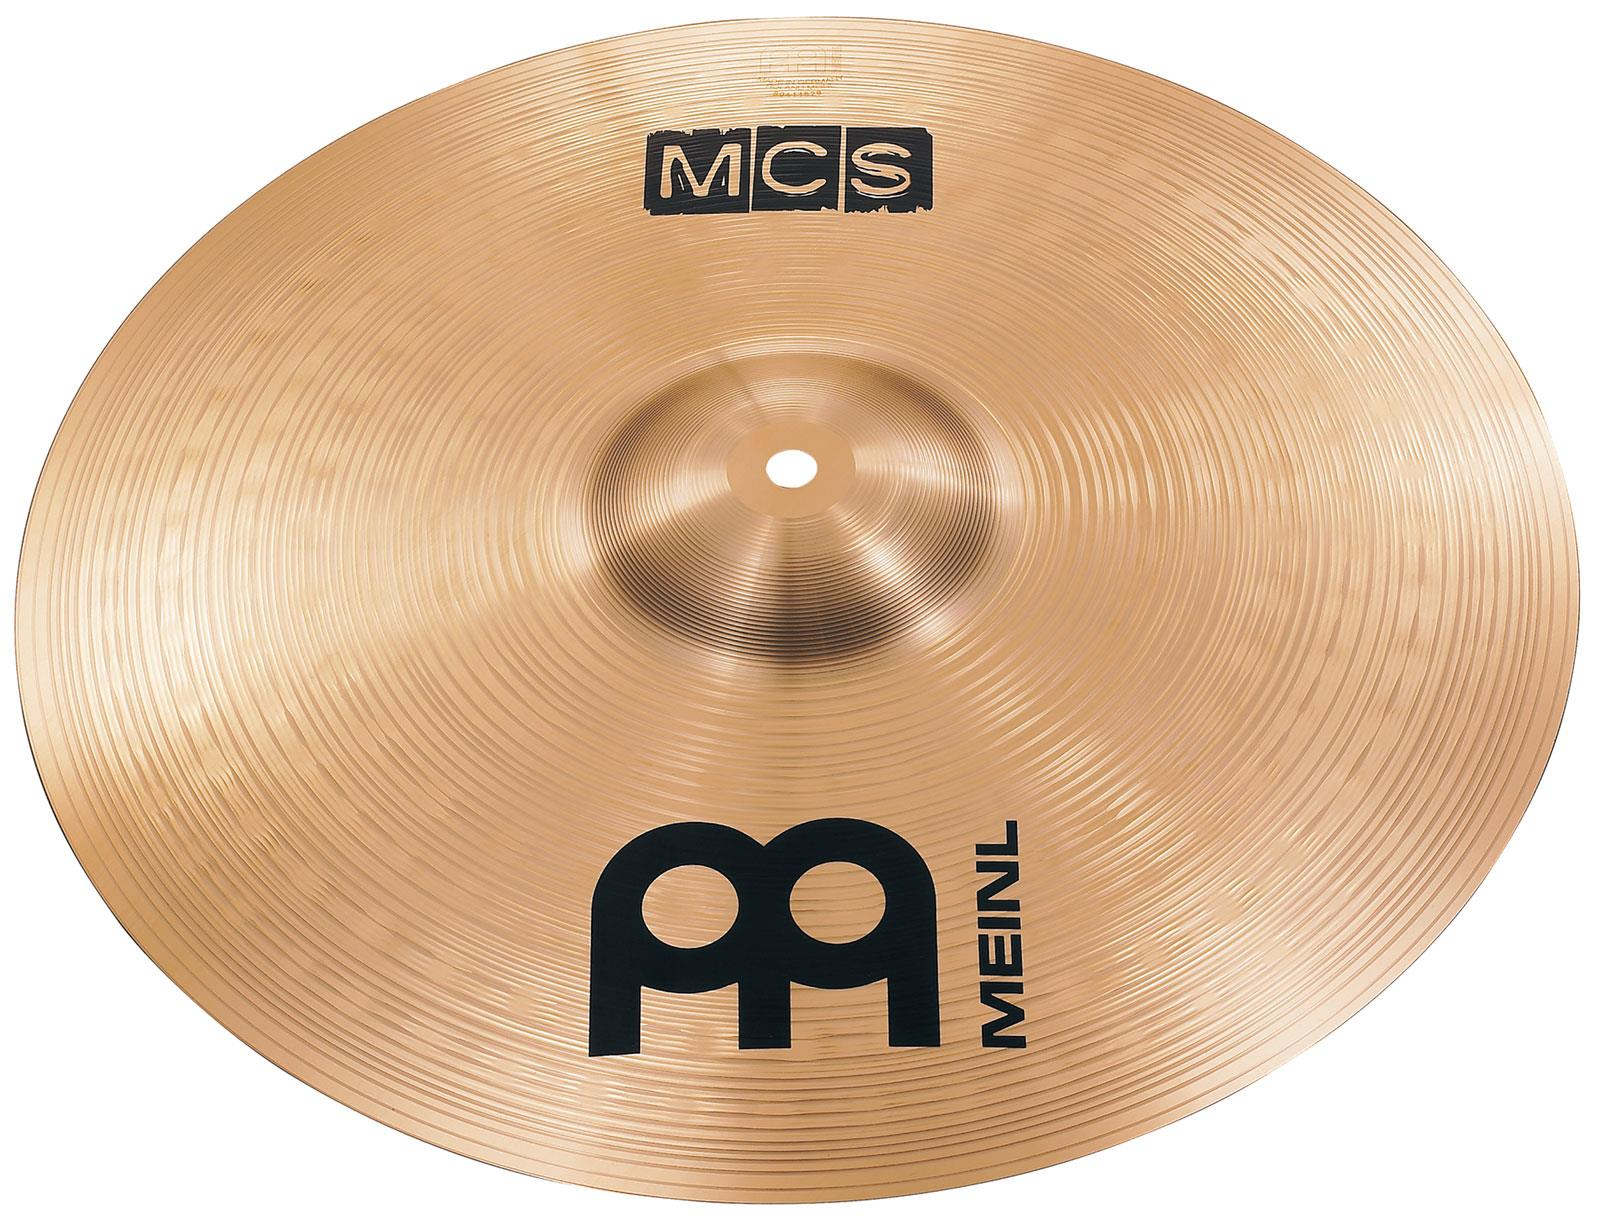 meinl mcs cymbal set keymusic. Black Bedroom Furniture Sets. Home Design Ideas